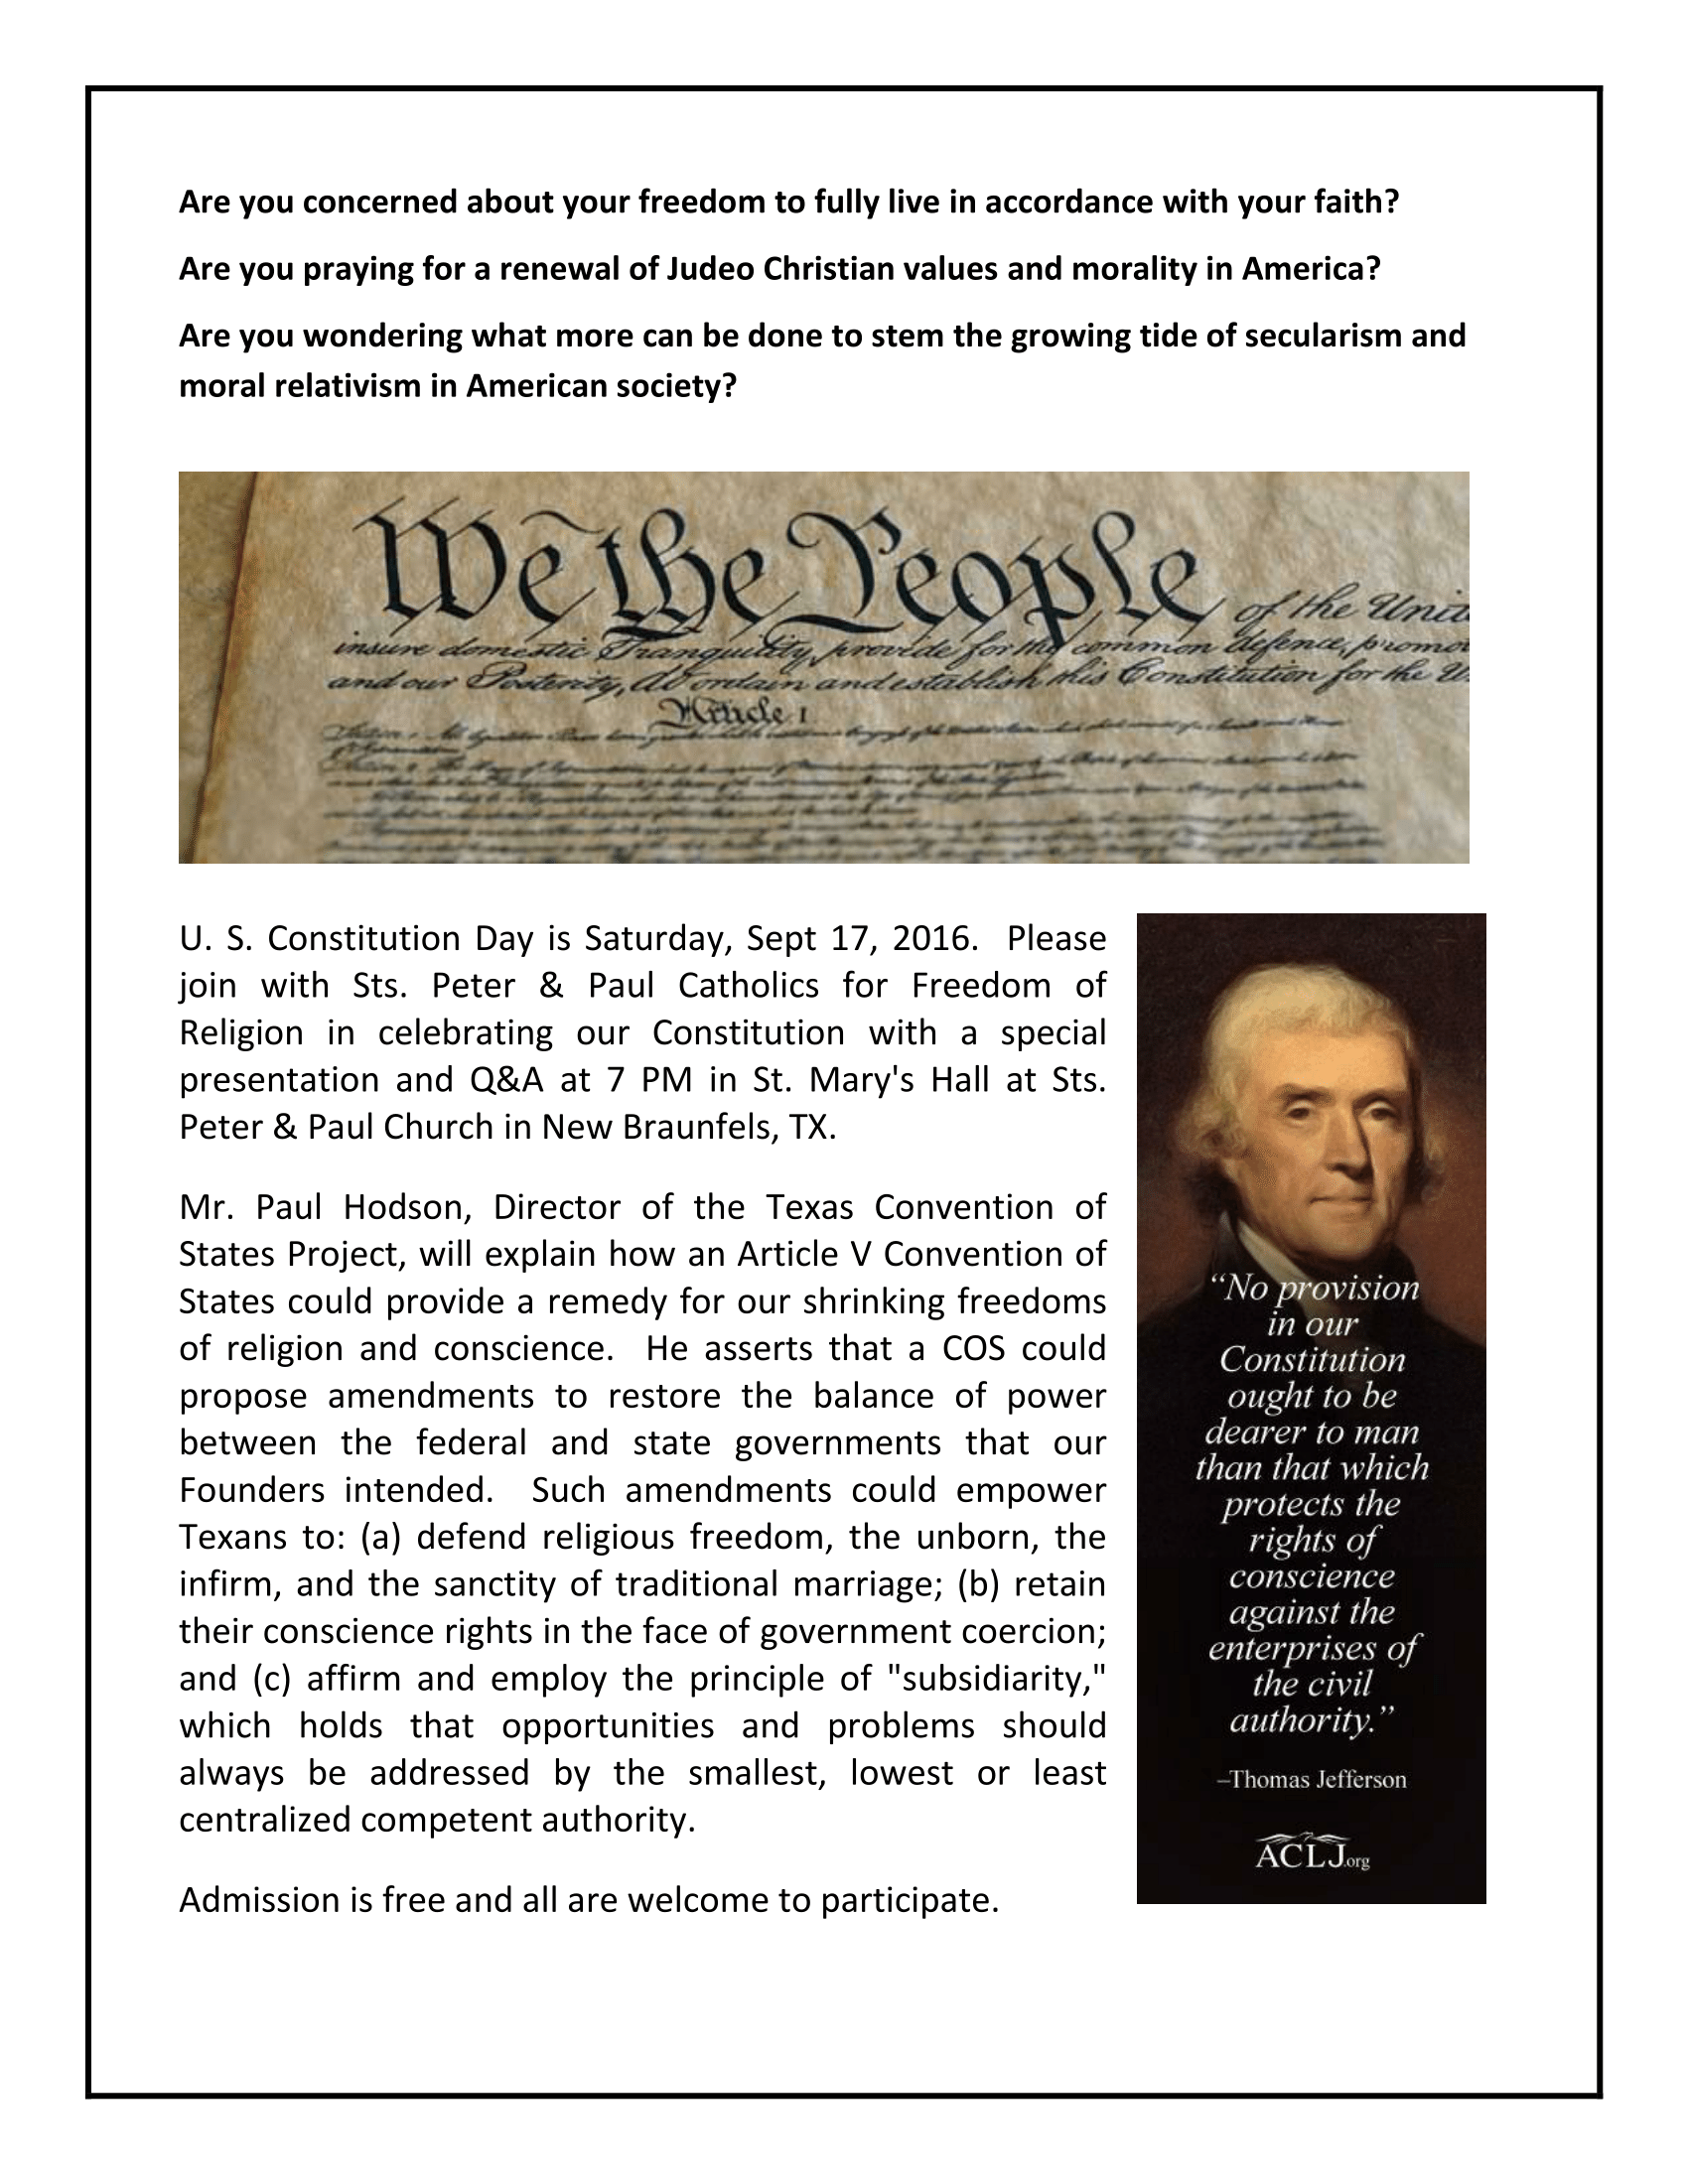 Sep_17_Const._of_States_Event_Flyer_and_Bulletin_Insert_2016-09-04_(1)-1.png